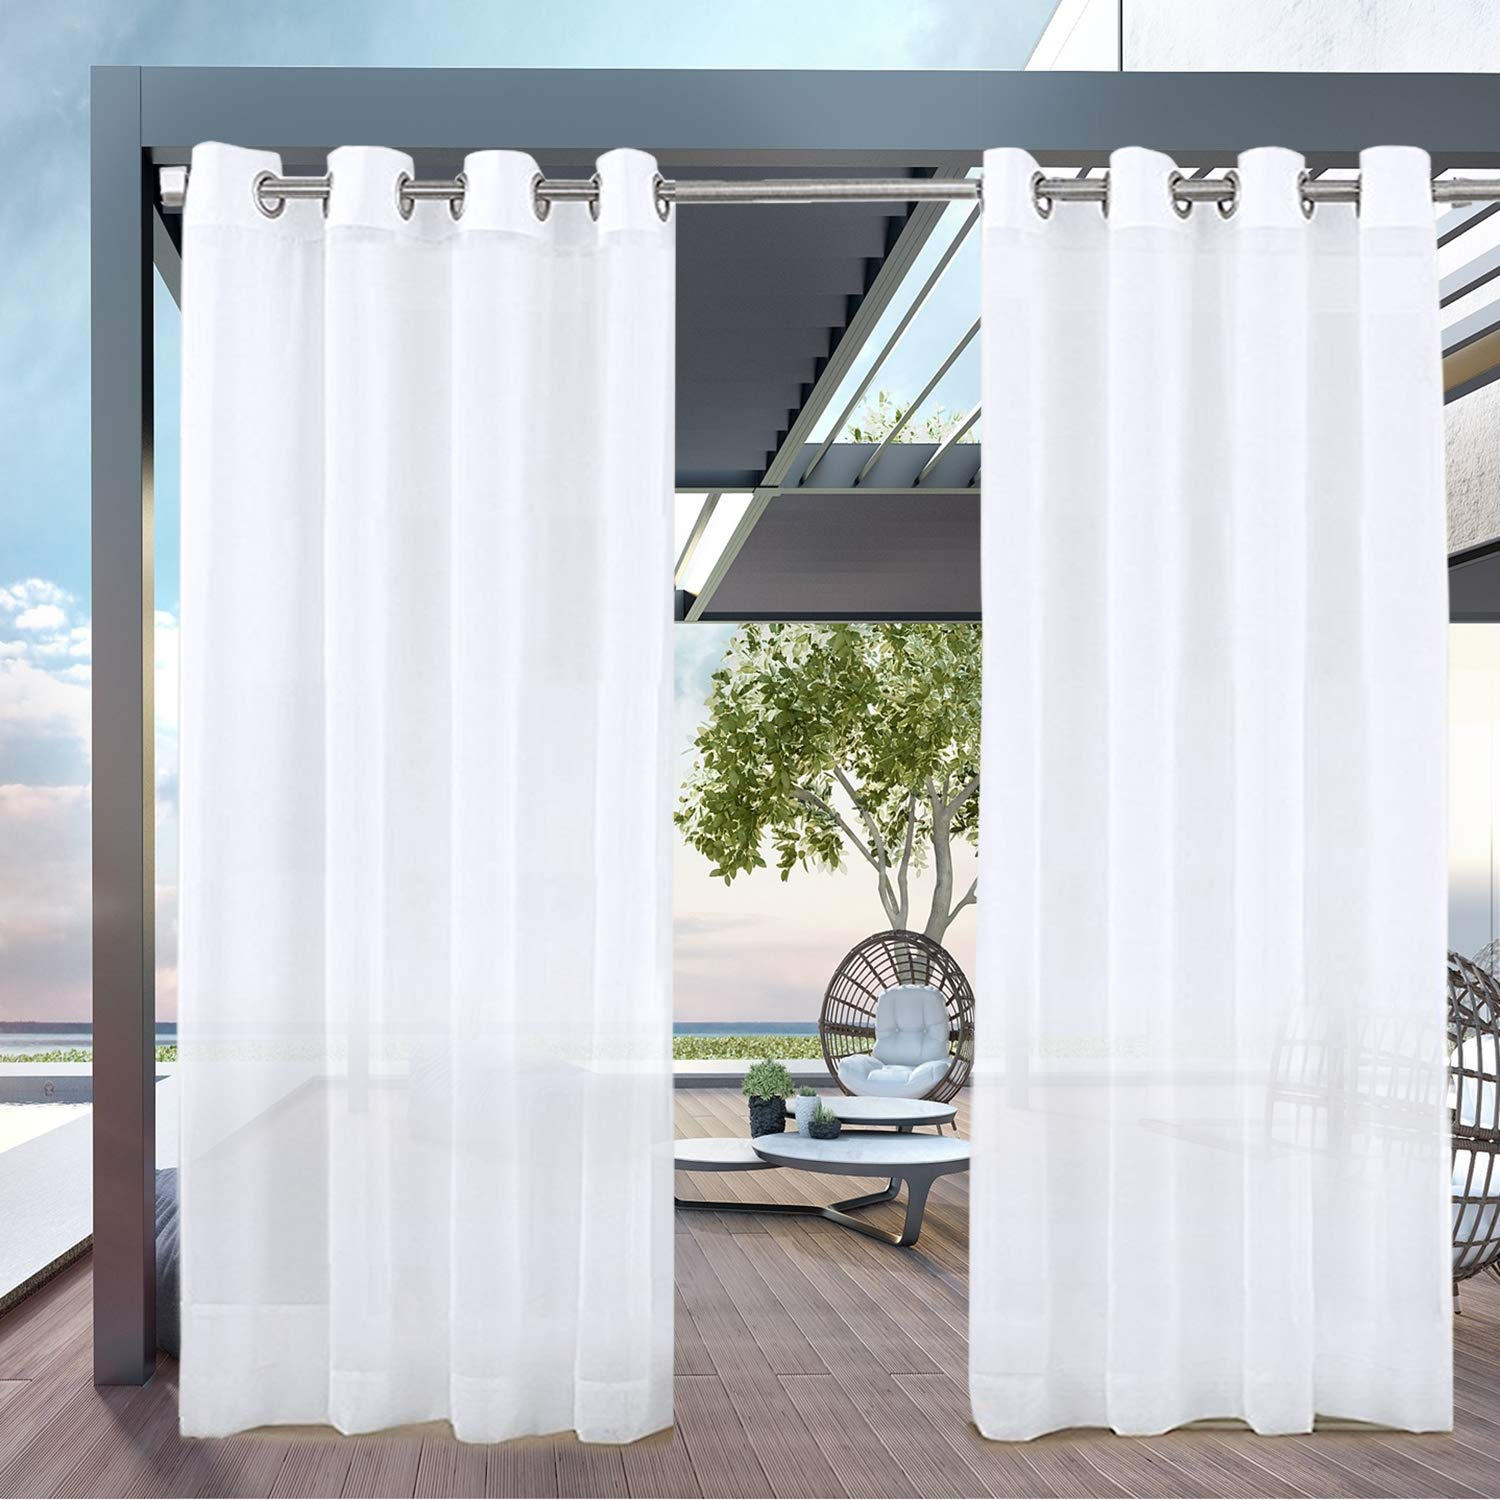 PRAVIVE Outdoor Sheer Curtains 10   Waterproof Grommet Indoor Outdoor  Curtains Patio Privacy White Sheer Drapes Blinds for Porch/Deck / Pergola,  W10 x ...